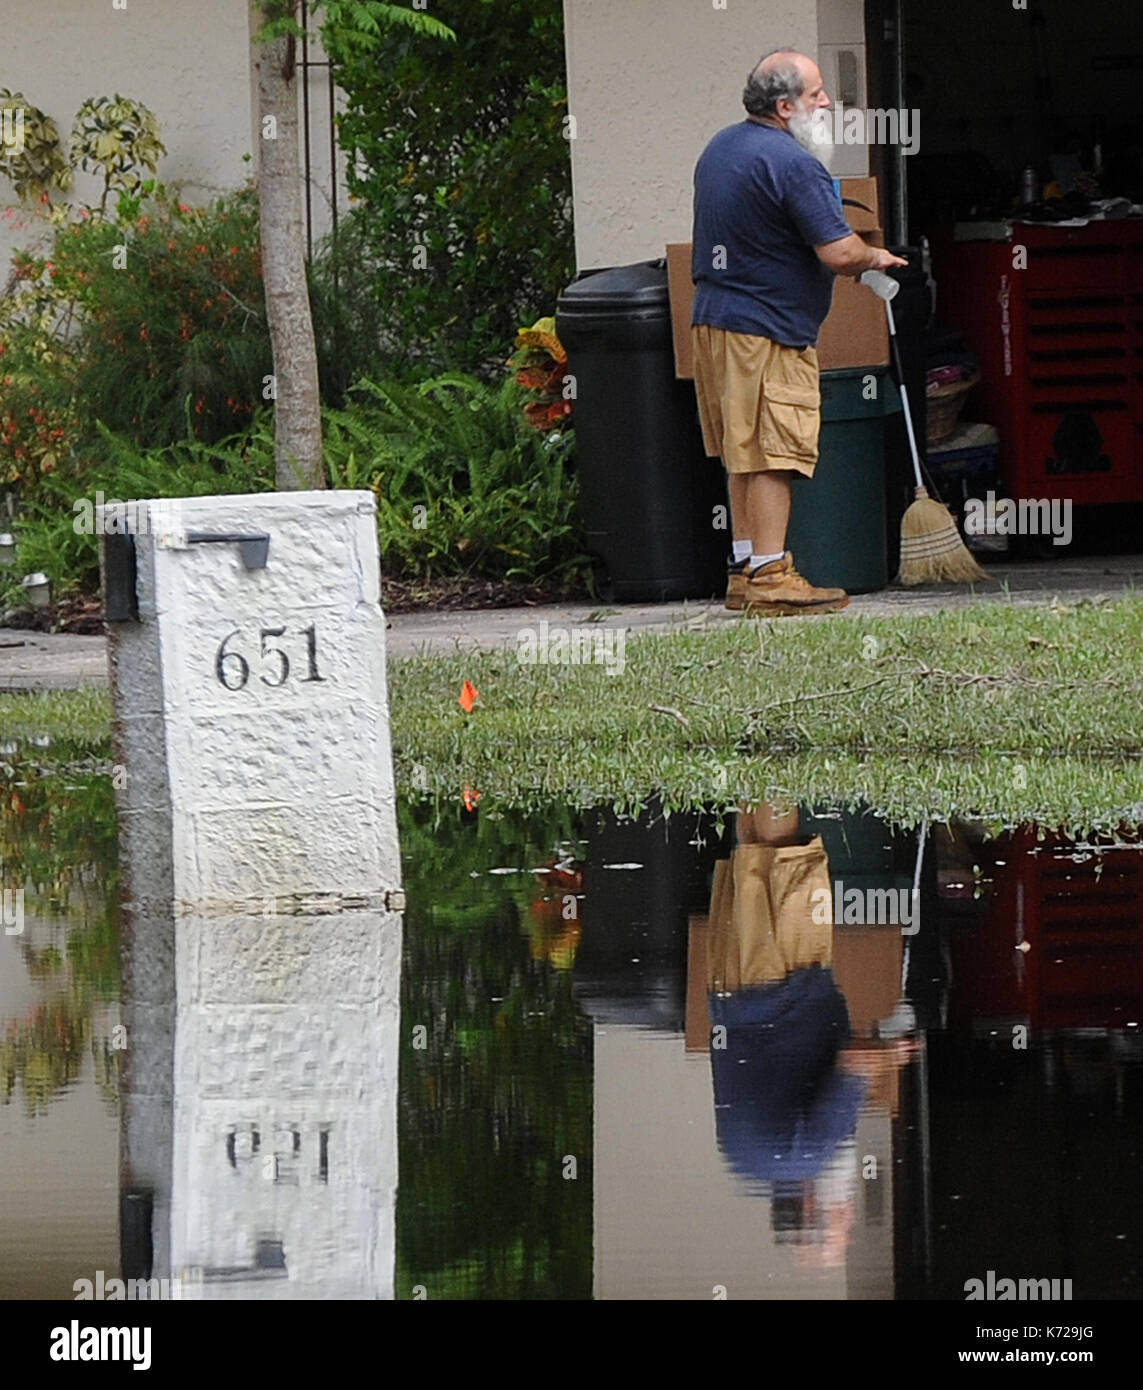 Altamonte Springs, United States. 14th Sep, 2017. September 14, 2017- Altamonte Springs, Florida, United States - A man and his mailbox are seen reflected in flood waters in the street in the Spring Oaks neighborhood of Altamonte Springs, Florida on September 14, 2017. Emergency workers used boats and trucks to rescue more than 50 residents on September 11, 2017 when water from the nearby Little Wekiva River swamped their homes in the wake of Hurricane Irma. Credit: Paul Hennessy/Alamy Live News - Stock Image